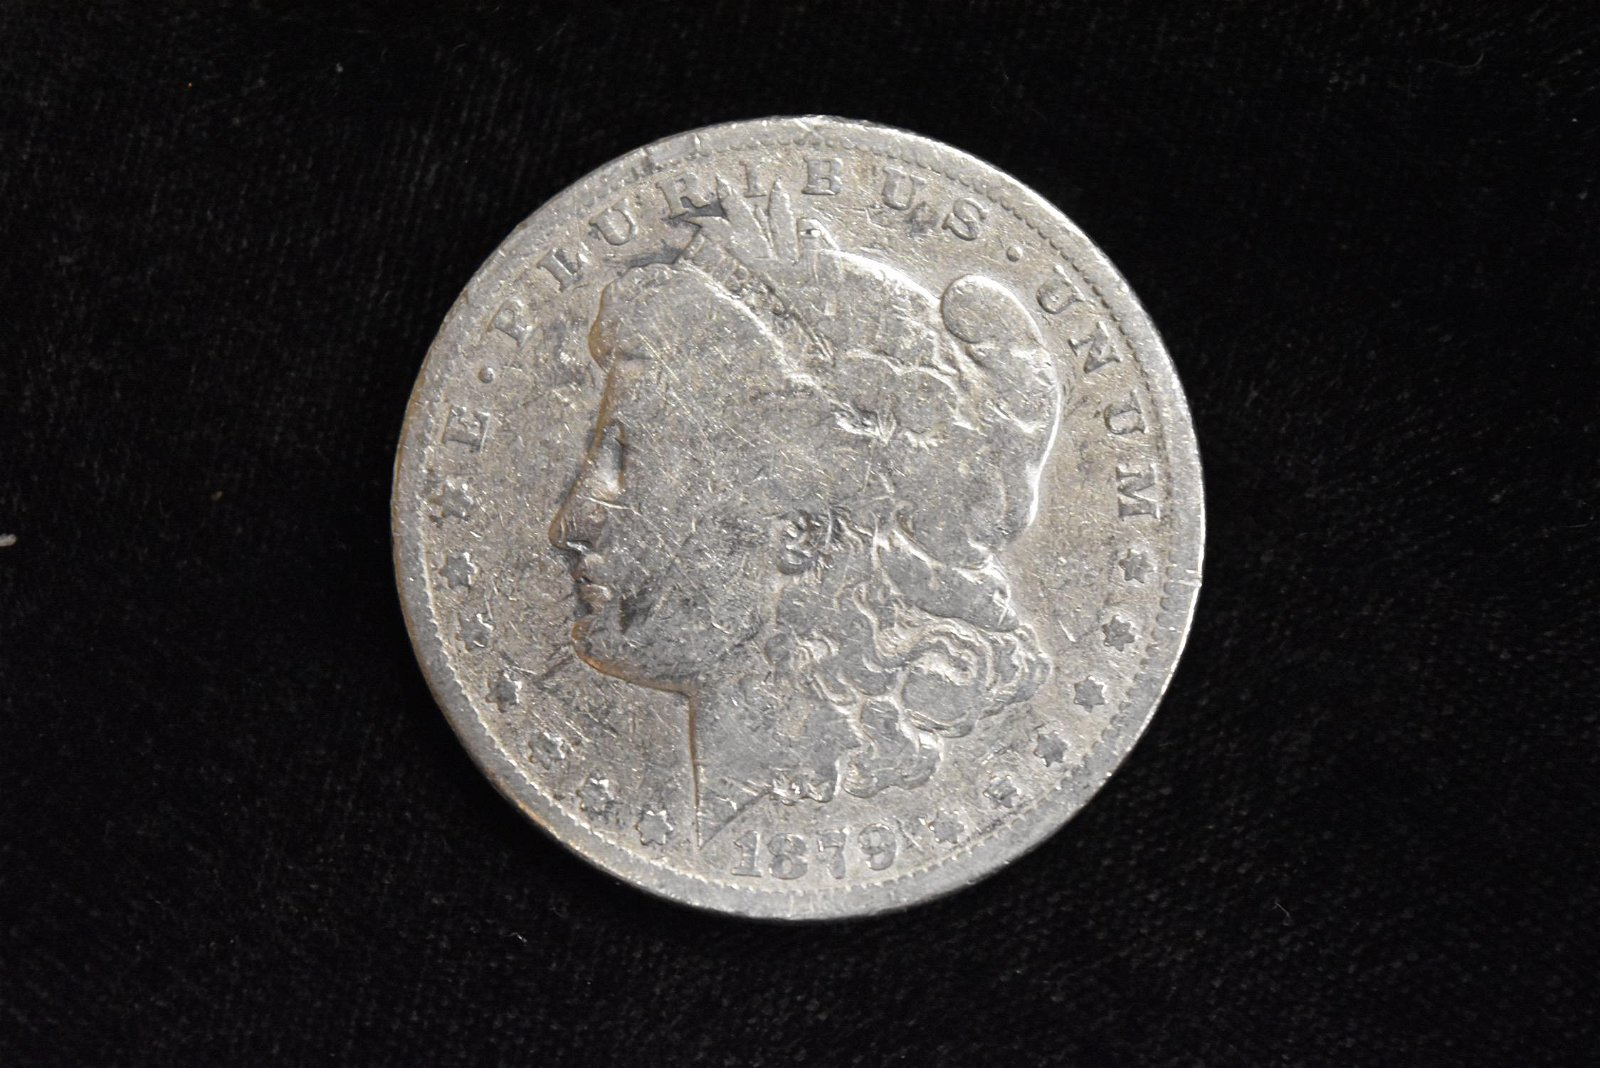 1879, Silver Dollar, Grade by Picture